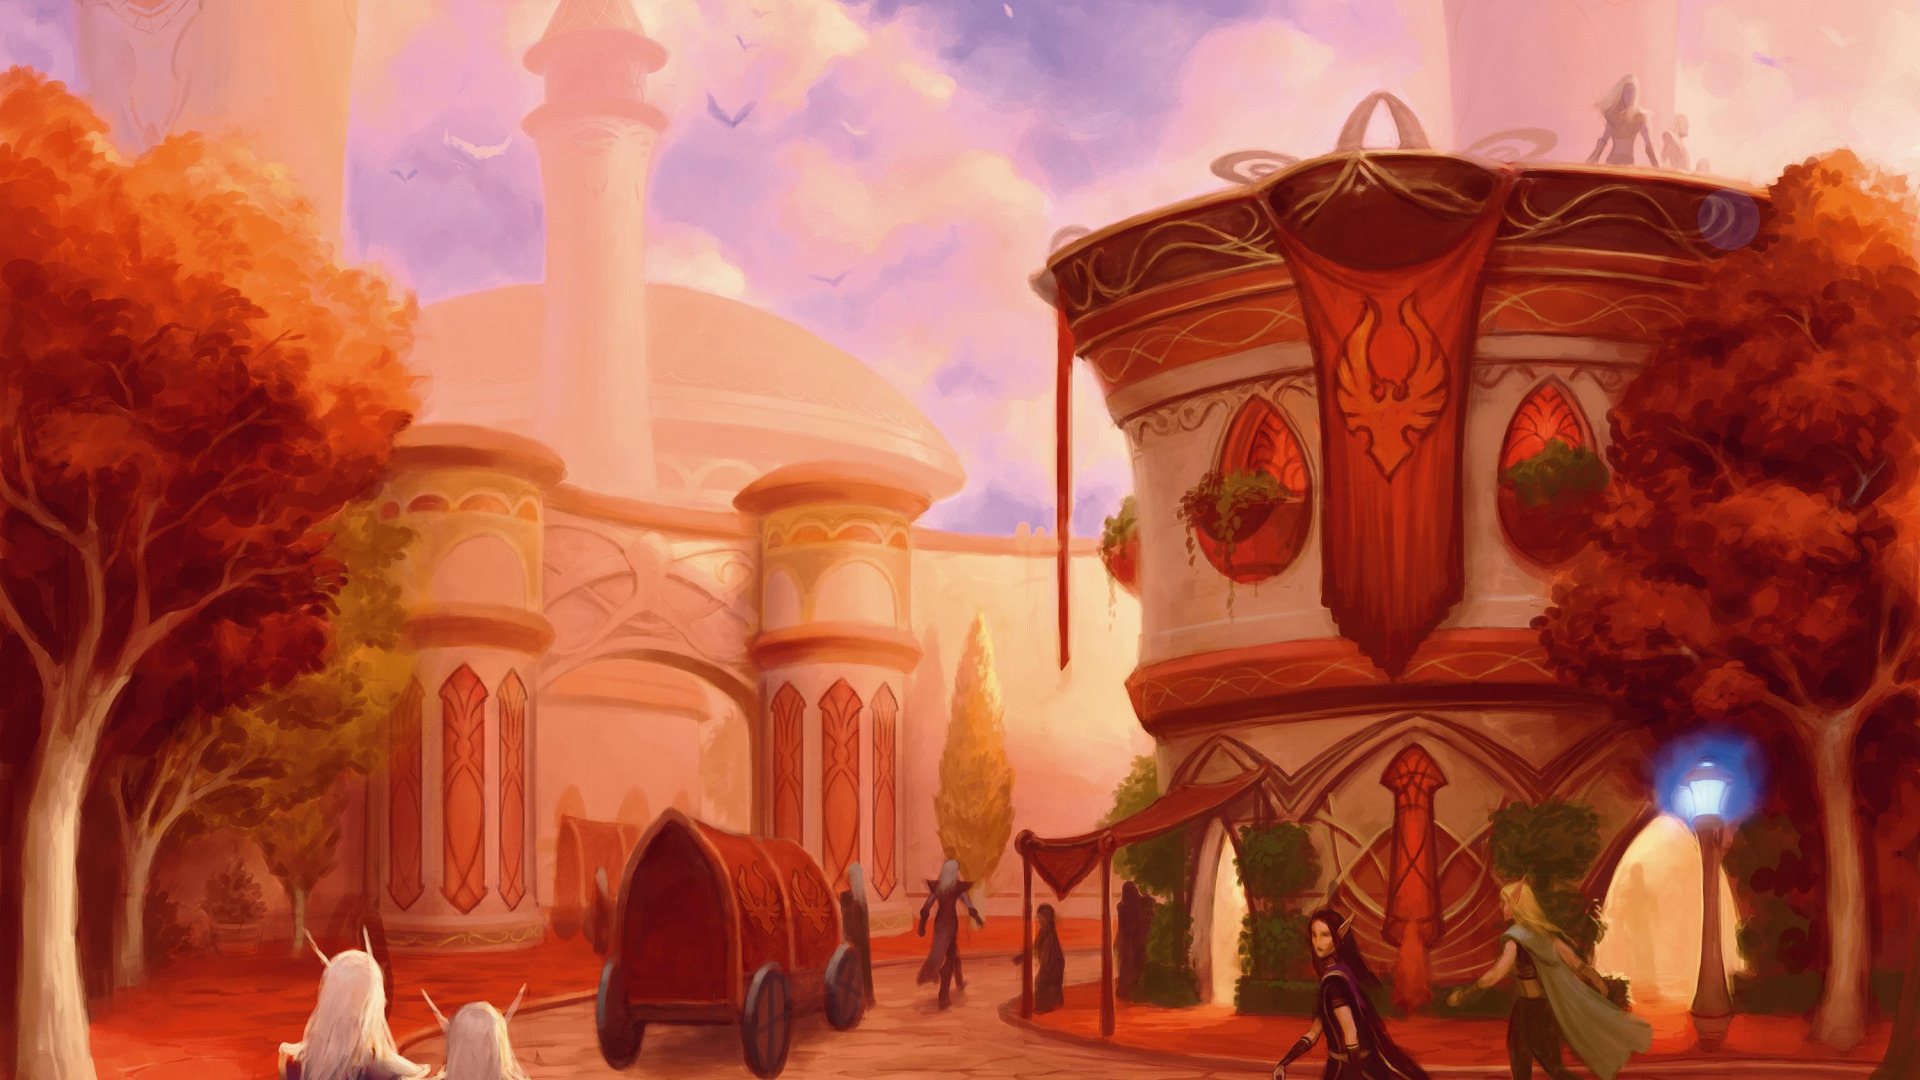 Food in the blood elf city anime scene